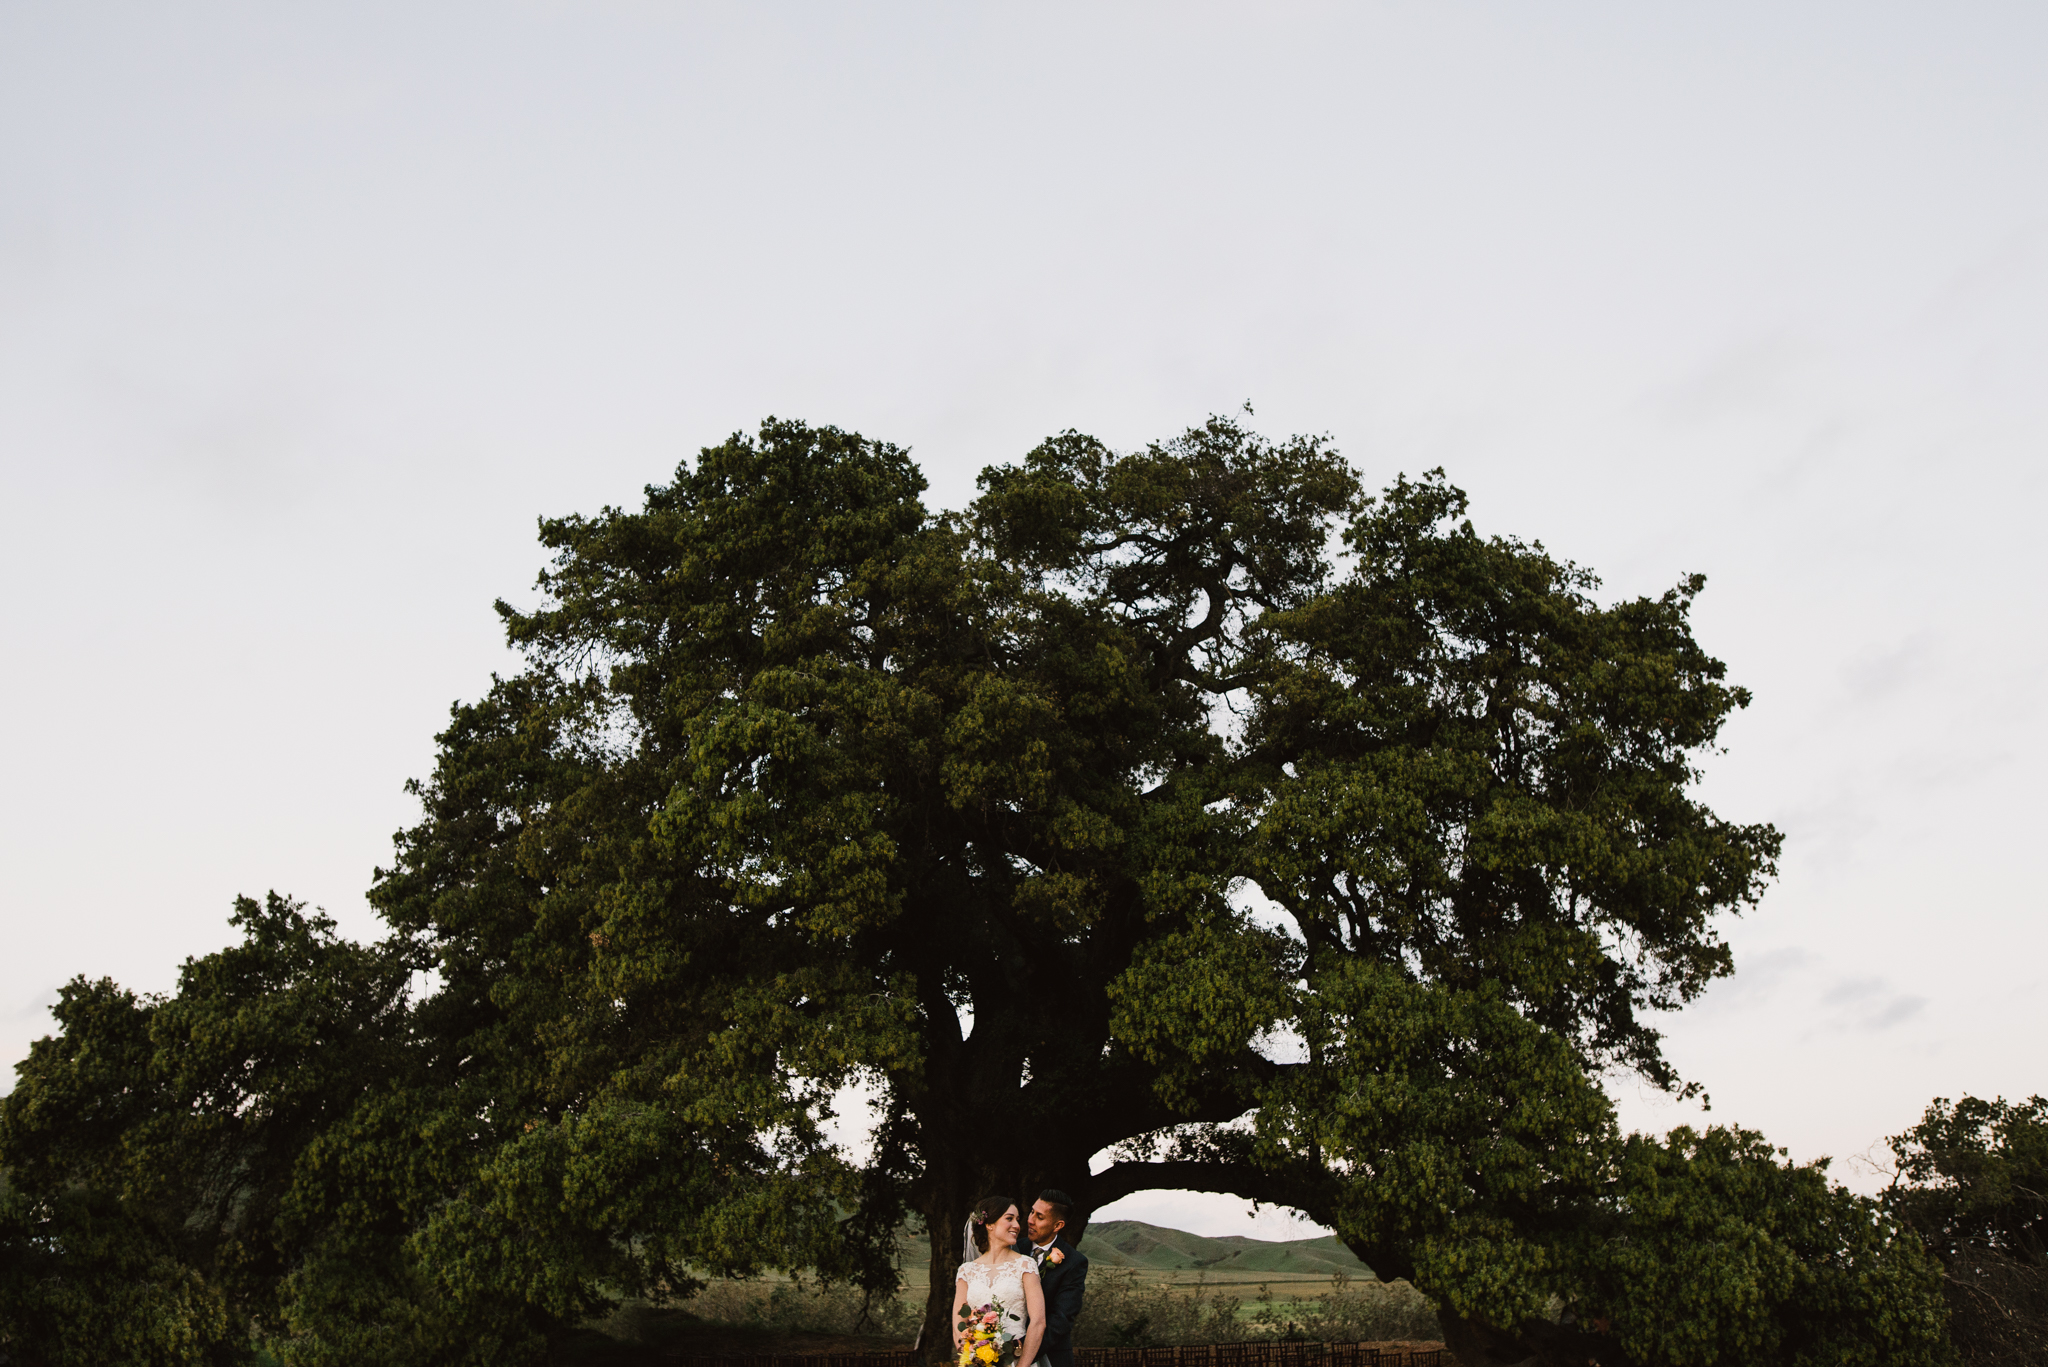 ©Isaiah-&-Taylor-Photography---Highland-Springs-Resort-Wedding,-Cherry-Valley-115.jpg